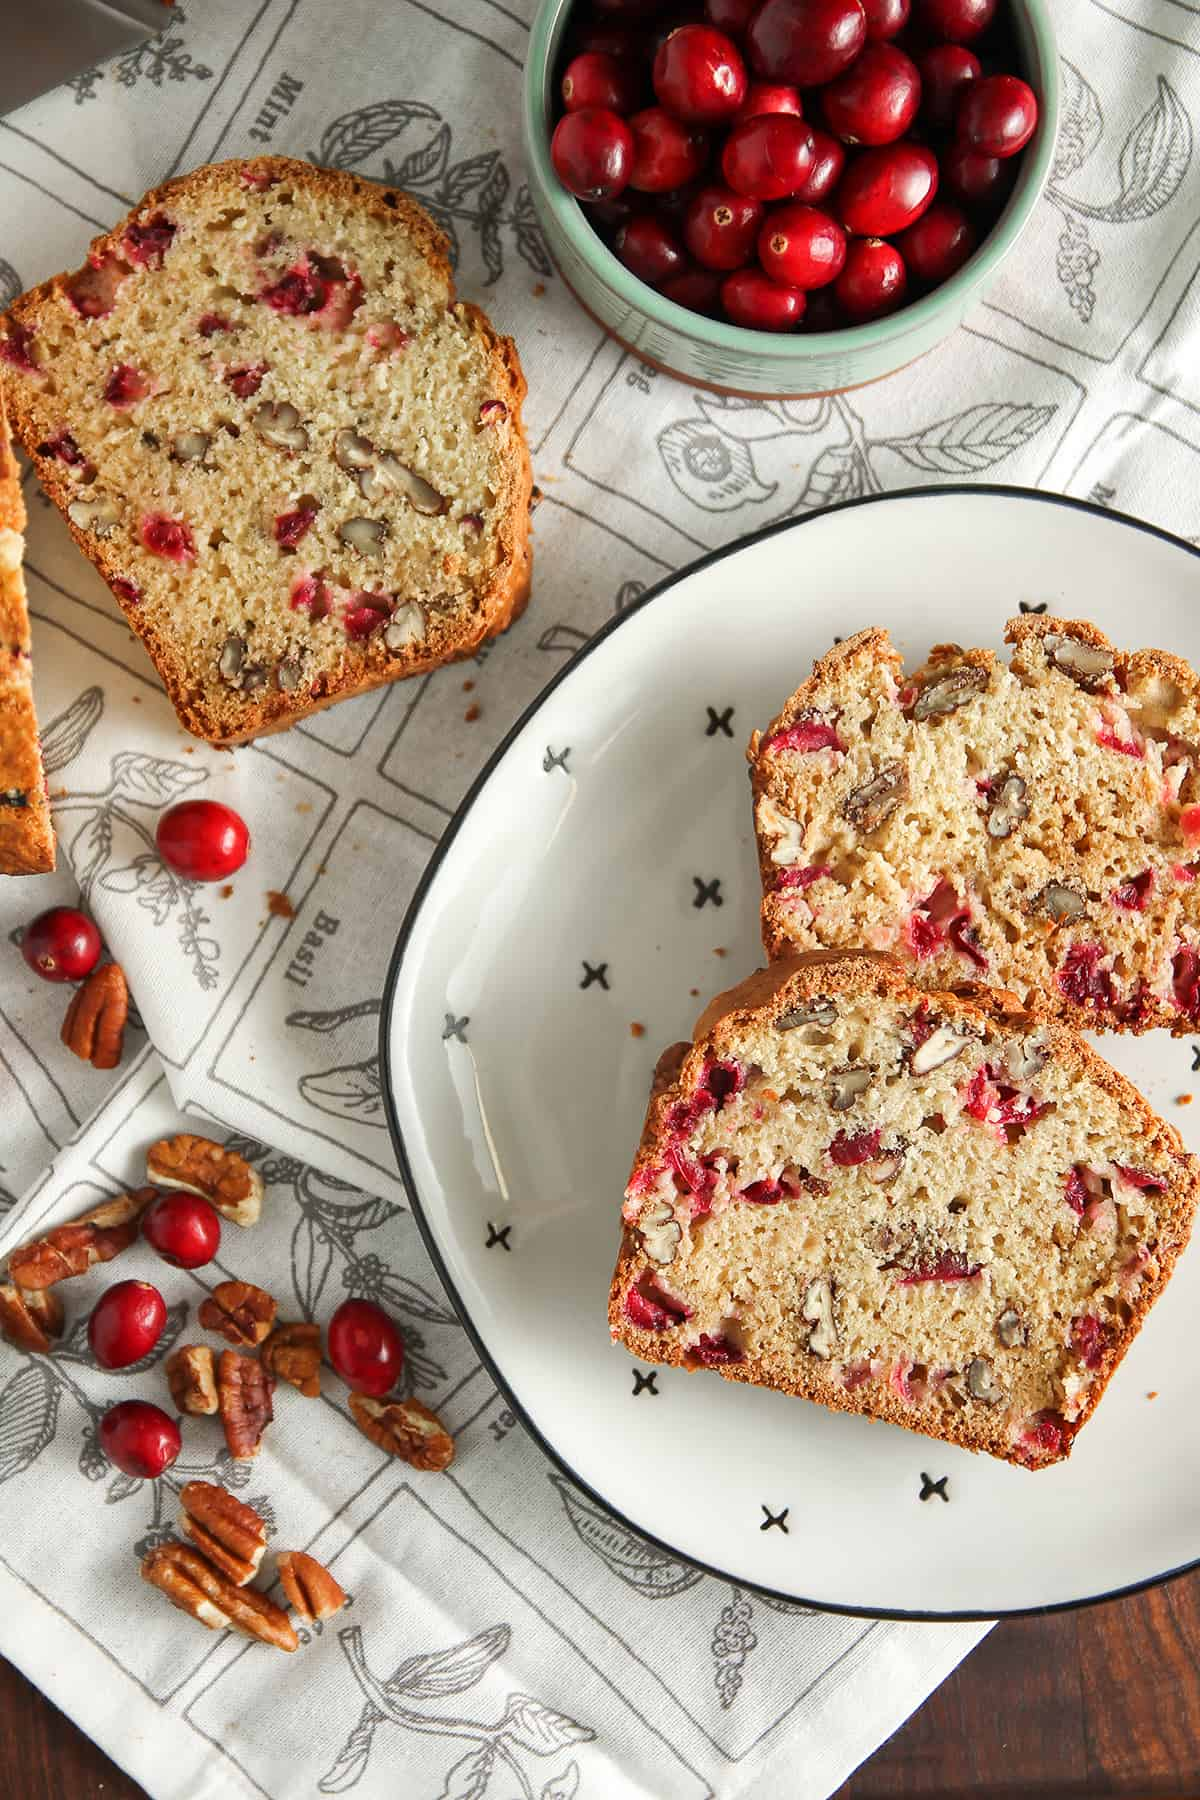 Cranberry Nut Bread is perfect for the holiday season. Full of fresh cranberries and pecans, this is an easy quick bread you'll want to make again and again.